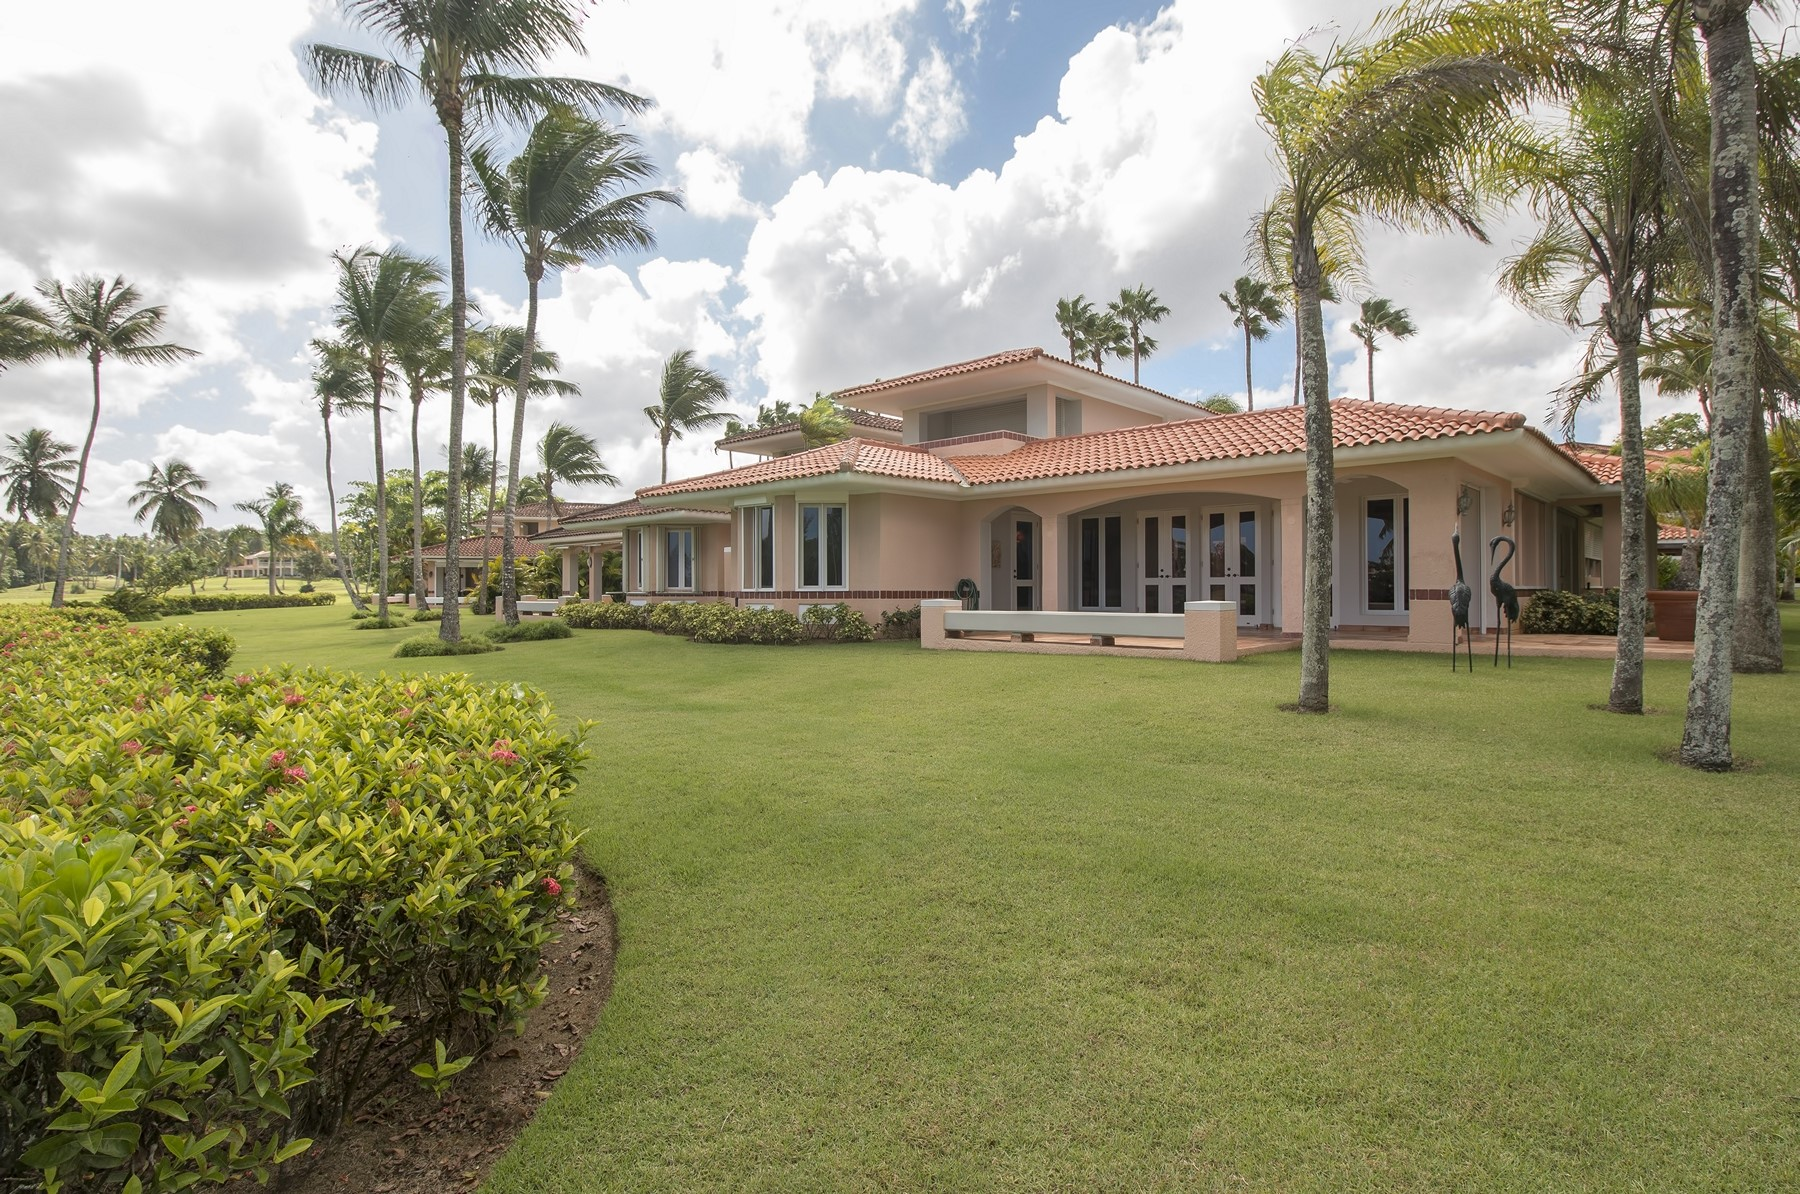 一戸建て のために 売買 アット Mediterranean Villa at The Greens 3 Green Villas Drive Dorado Beach, Puerto Rico 00646 プエルトリコ